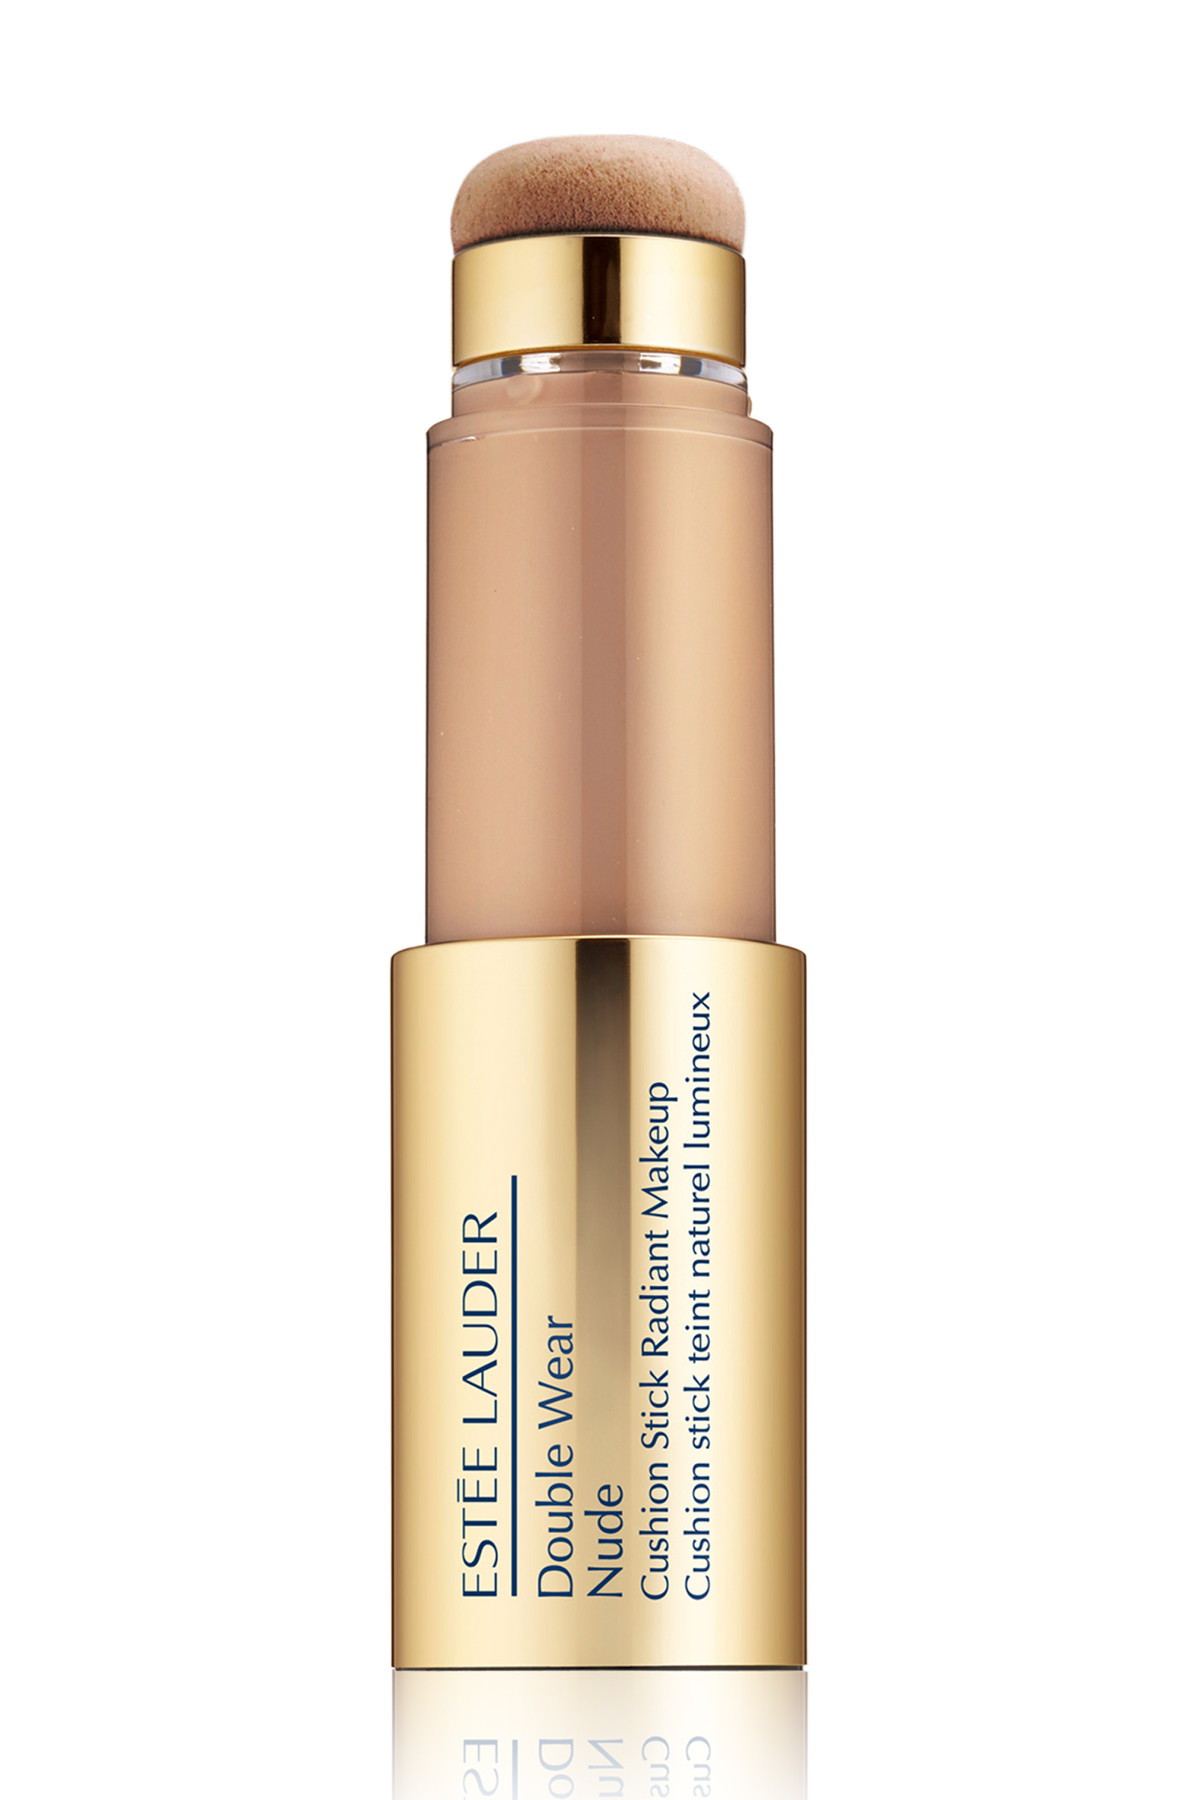 Estee Lauder Stick Fondöten – Double Wear Nude Cushion Radiant Makeup 2c2 887167257627 – 145.53 TL